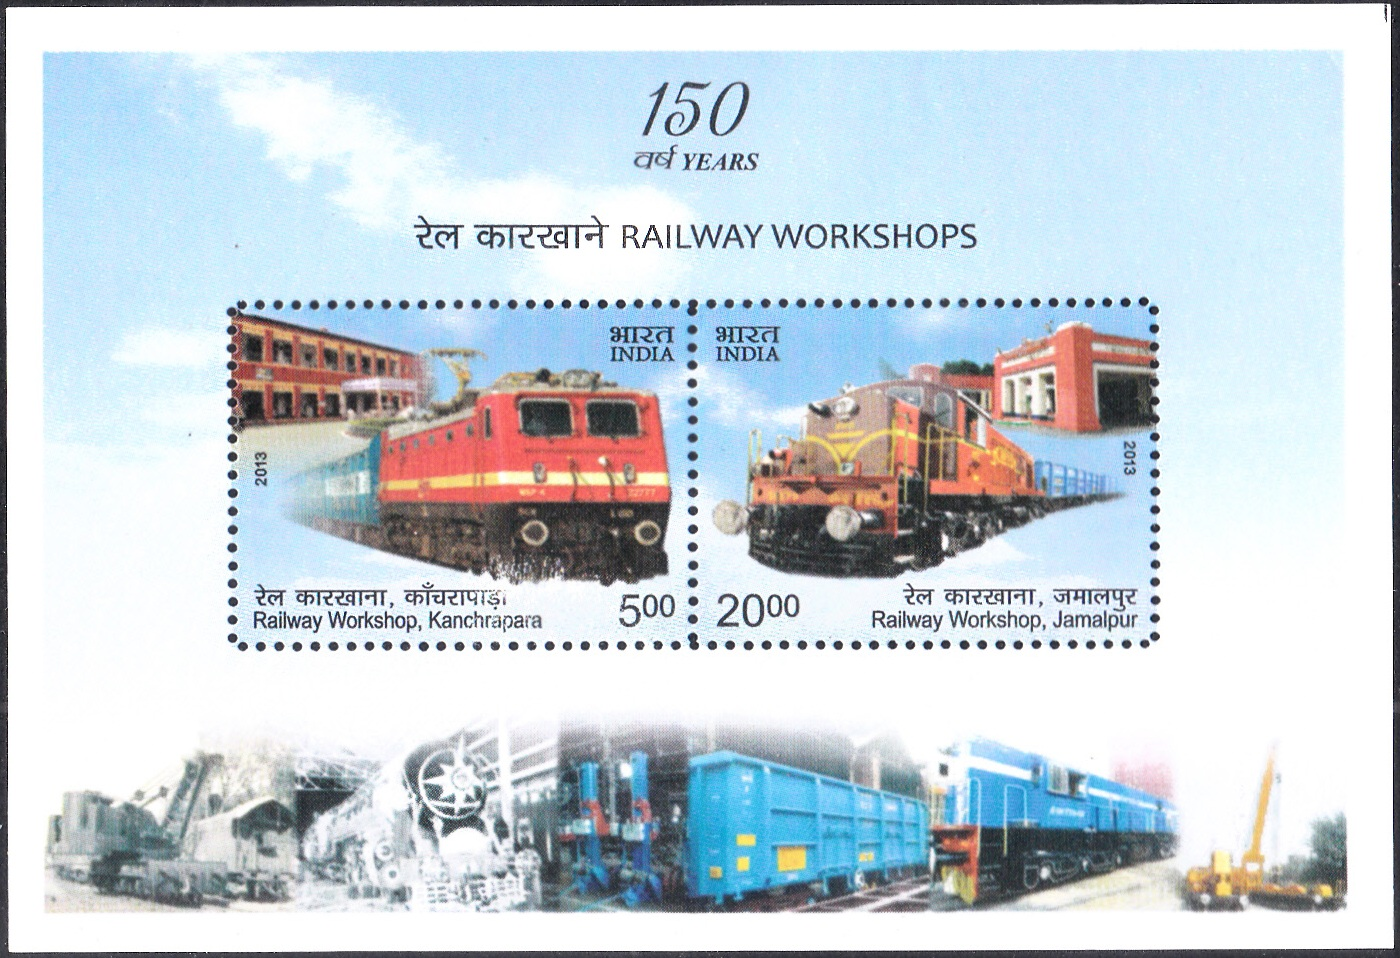 Kanchrapara Railway Workshop & Jamalpur Locomotive Workshop